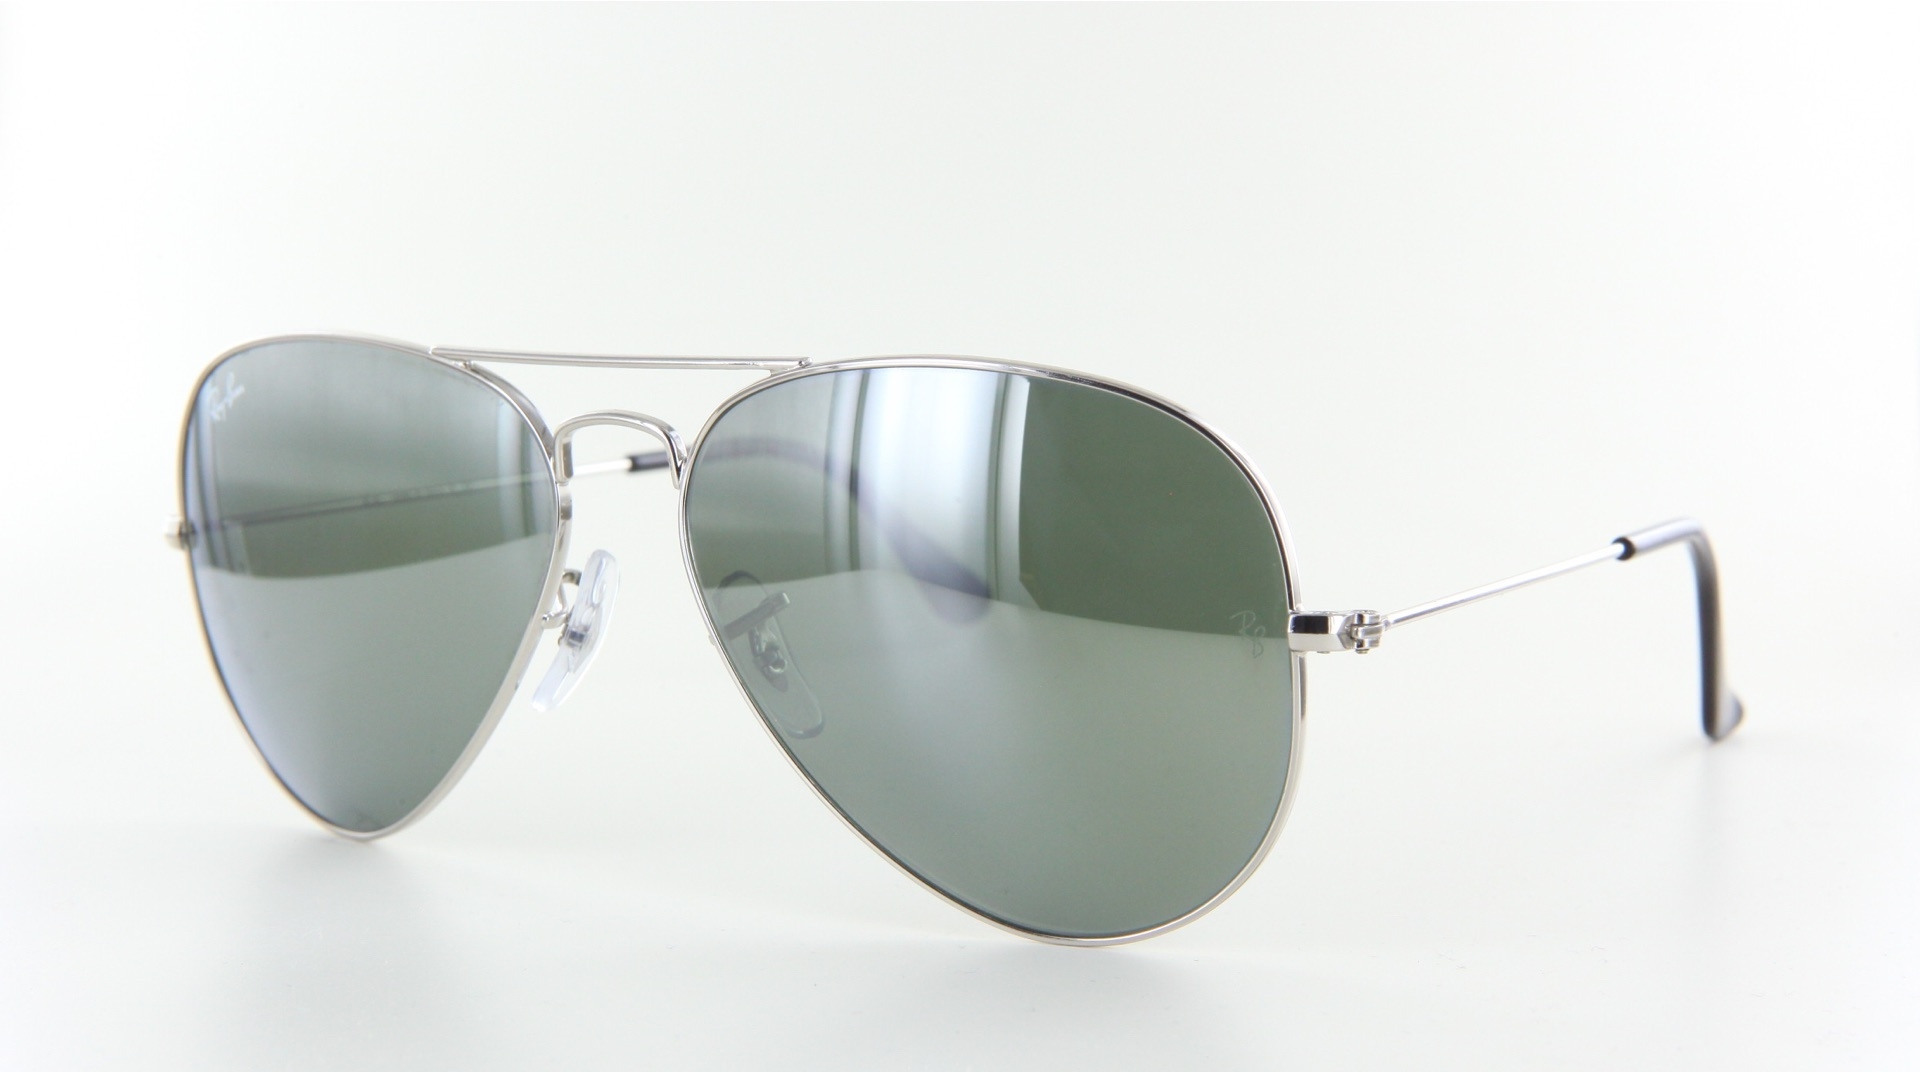 Ray-Ban - ref: 46482